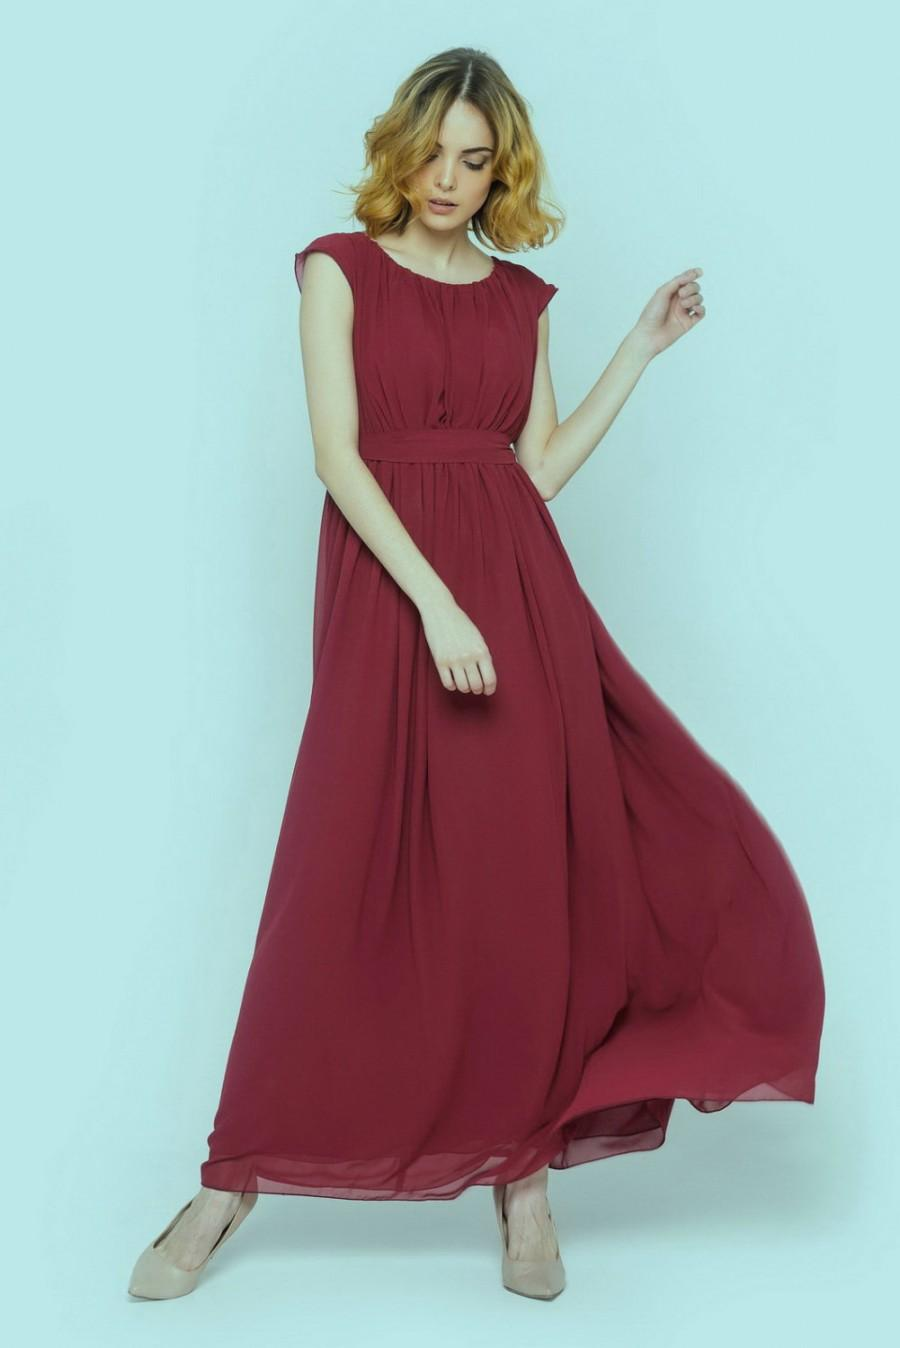 Boda - Marsala bridesmaid dress,Evening dress, Chiffon long dress, Flared sleeveless dress,Formal maroon dress,Bridesmaid long dress,Burgundy dress